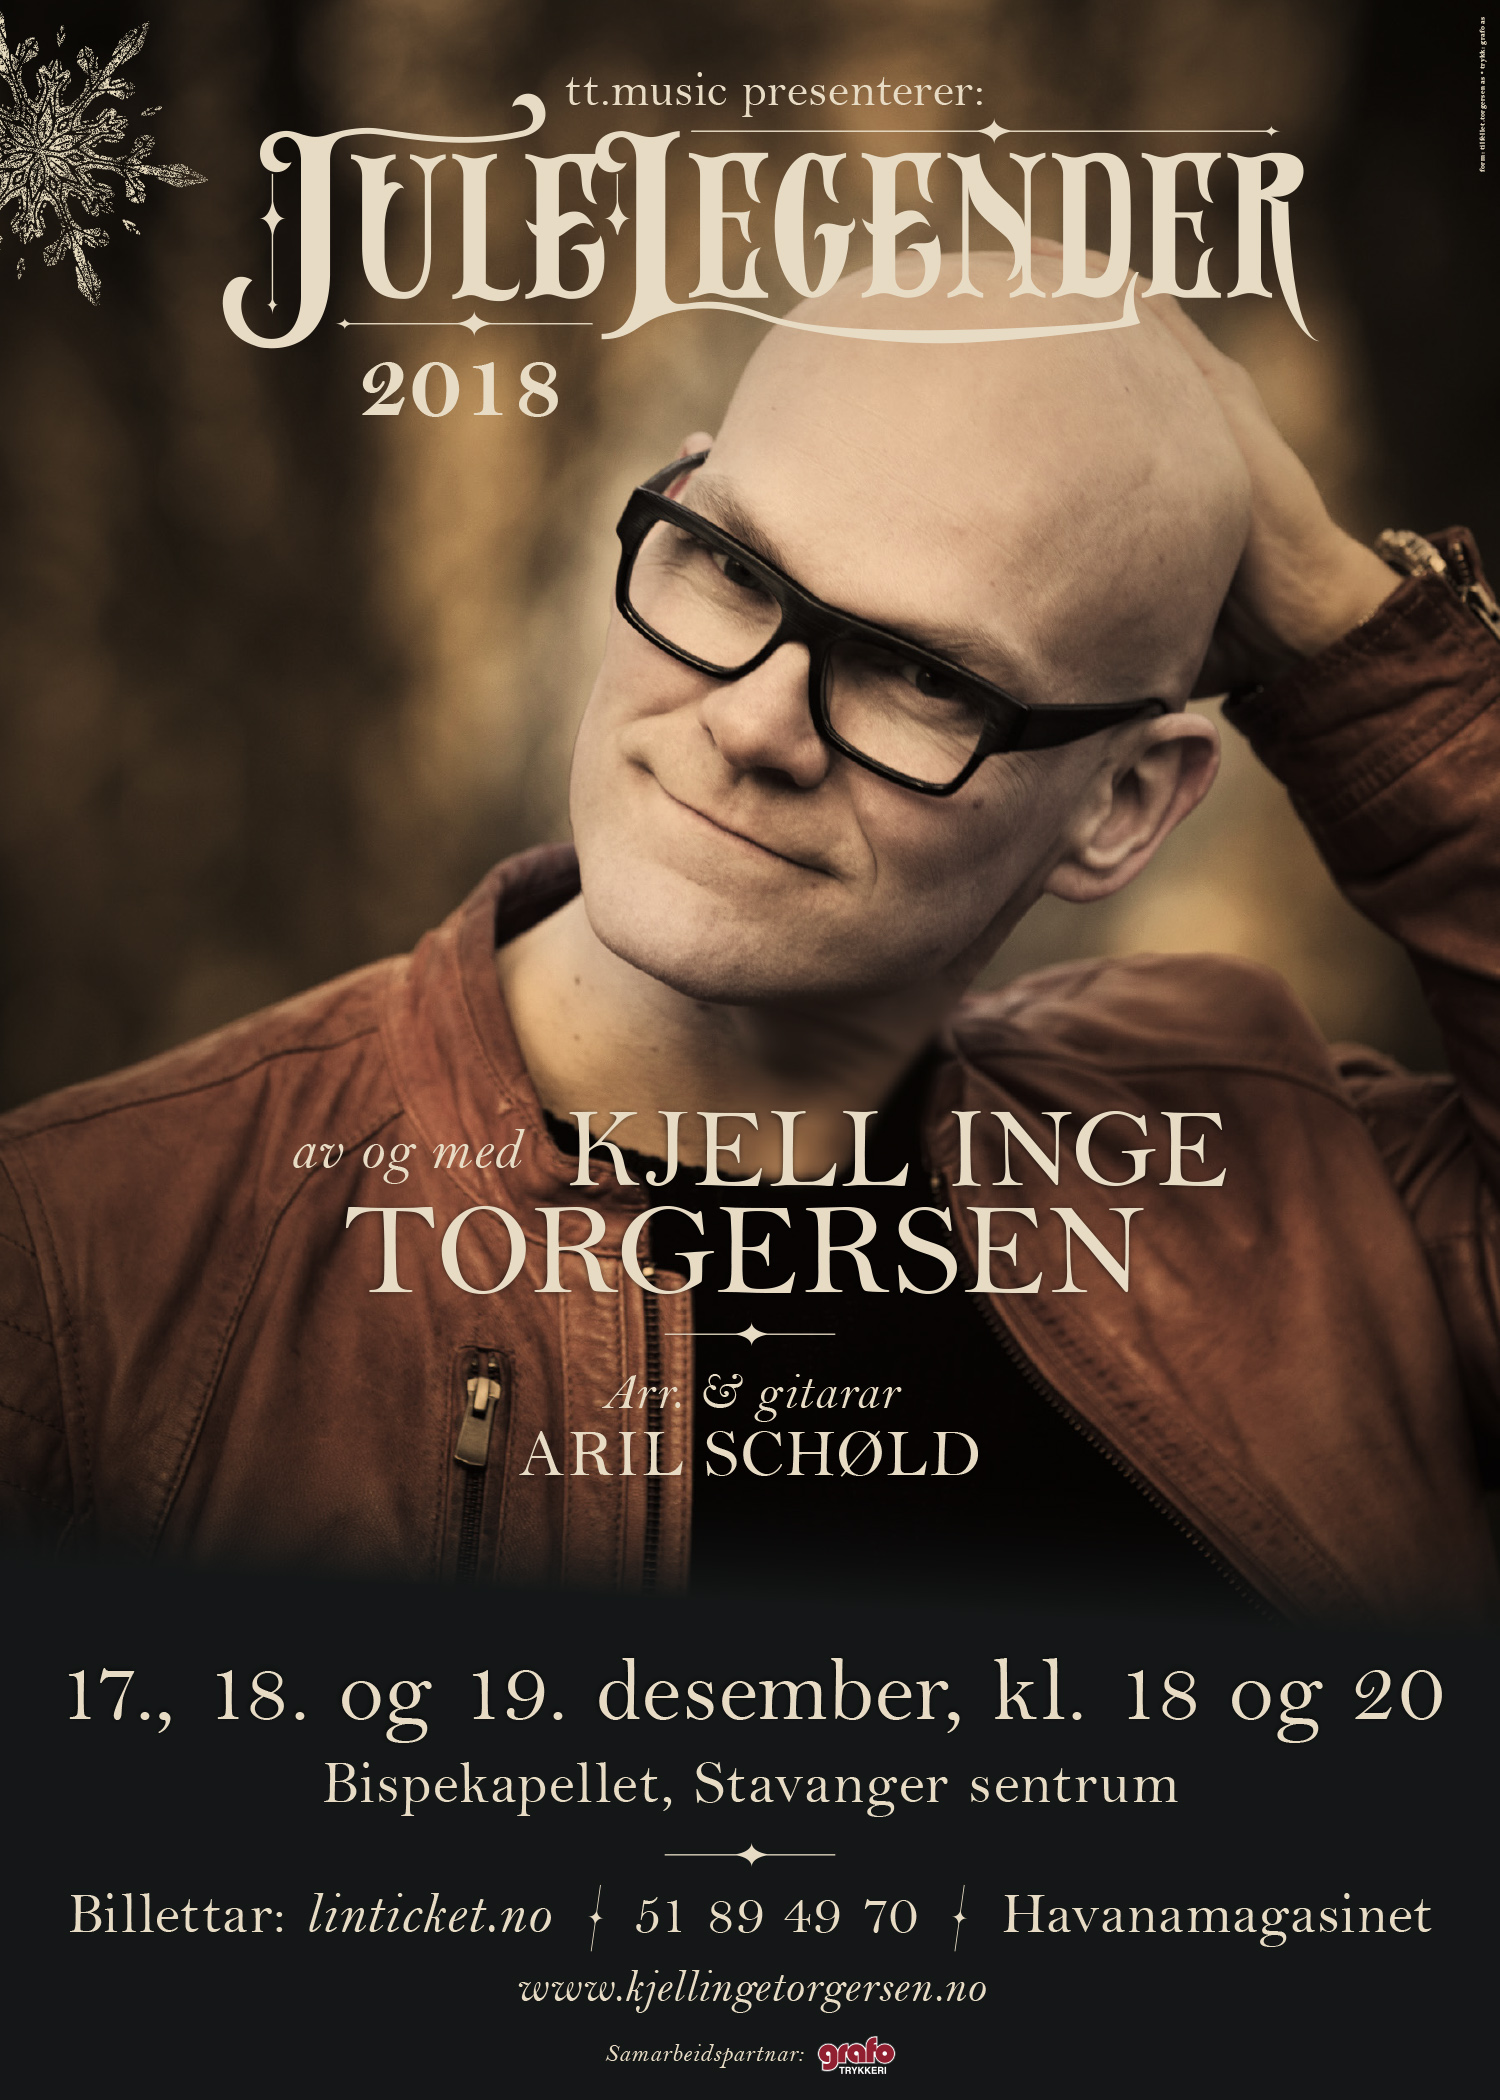 Plakat Julelegender 2018. Form: tilfellet.torgersen as. Foto: MB Multimedia.